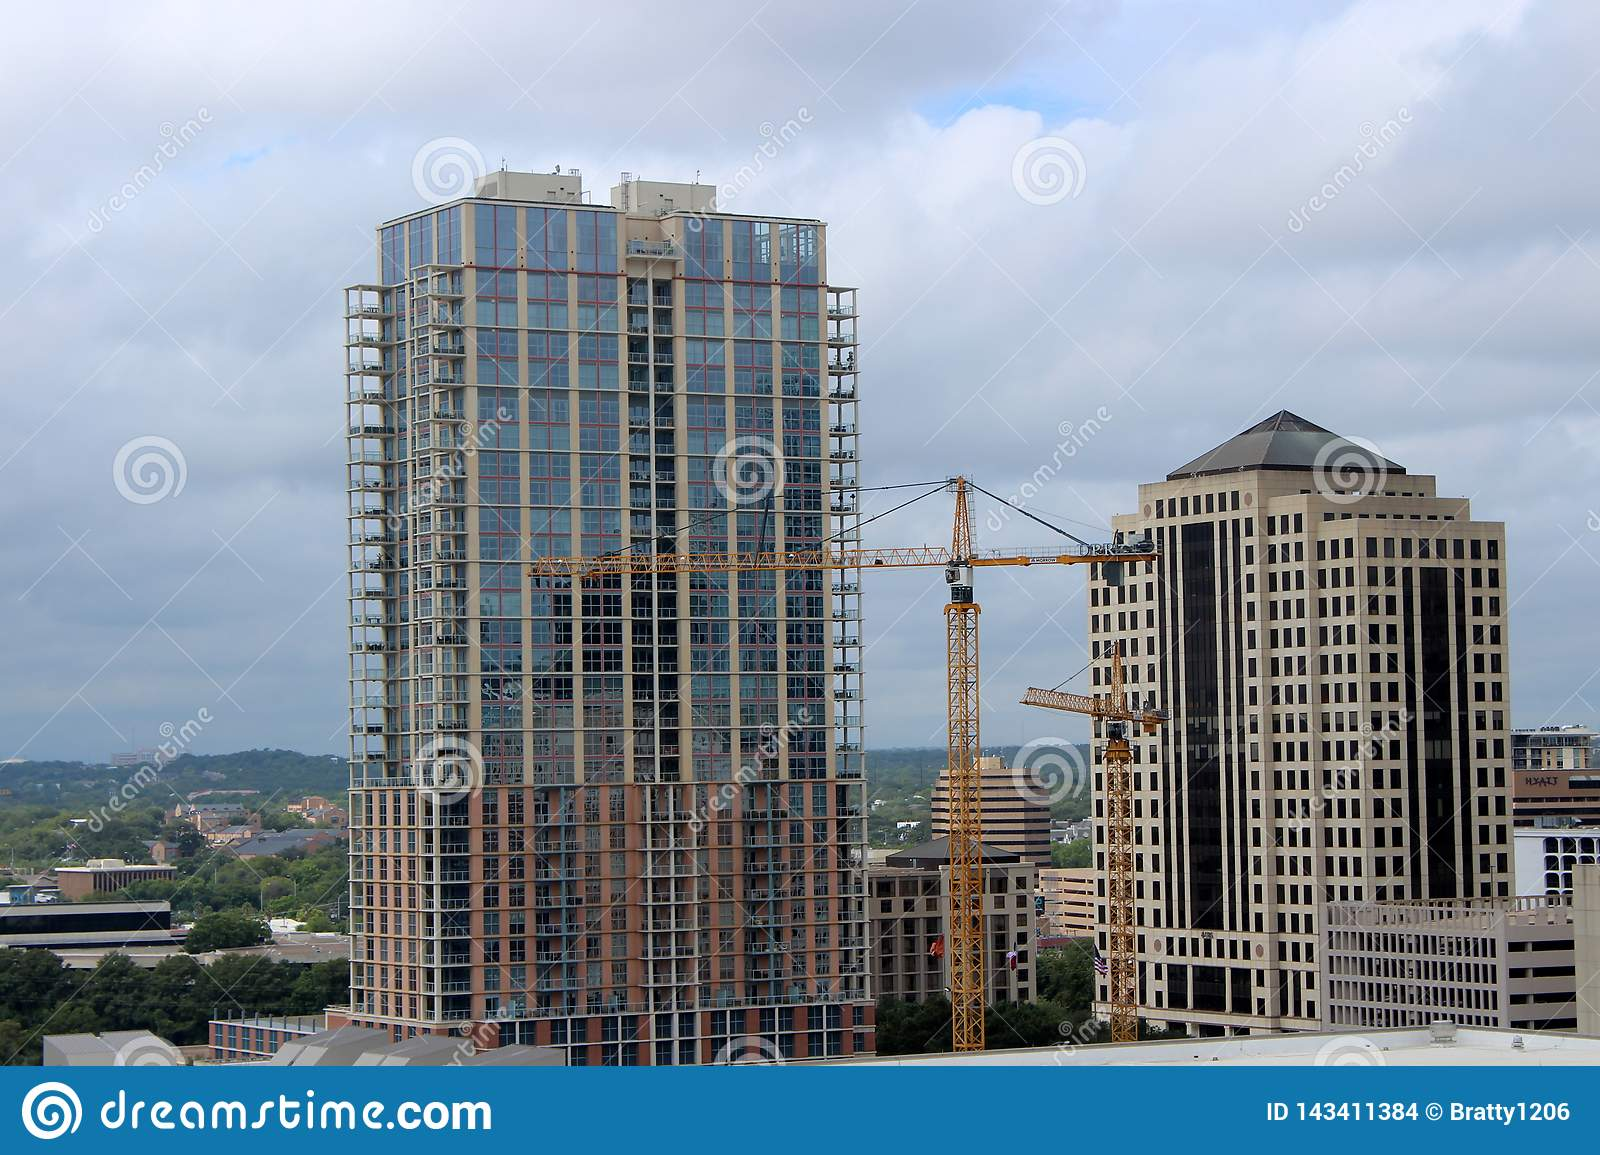 42 Austin Apartment Construction Photos Free Royalty Free Stock Photos From Dreamstime